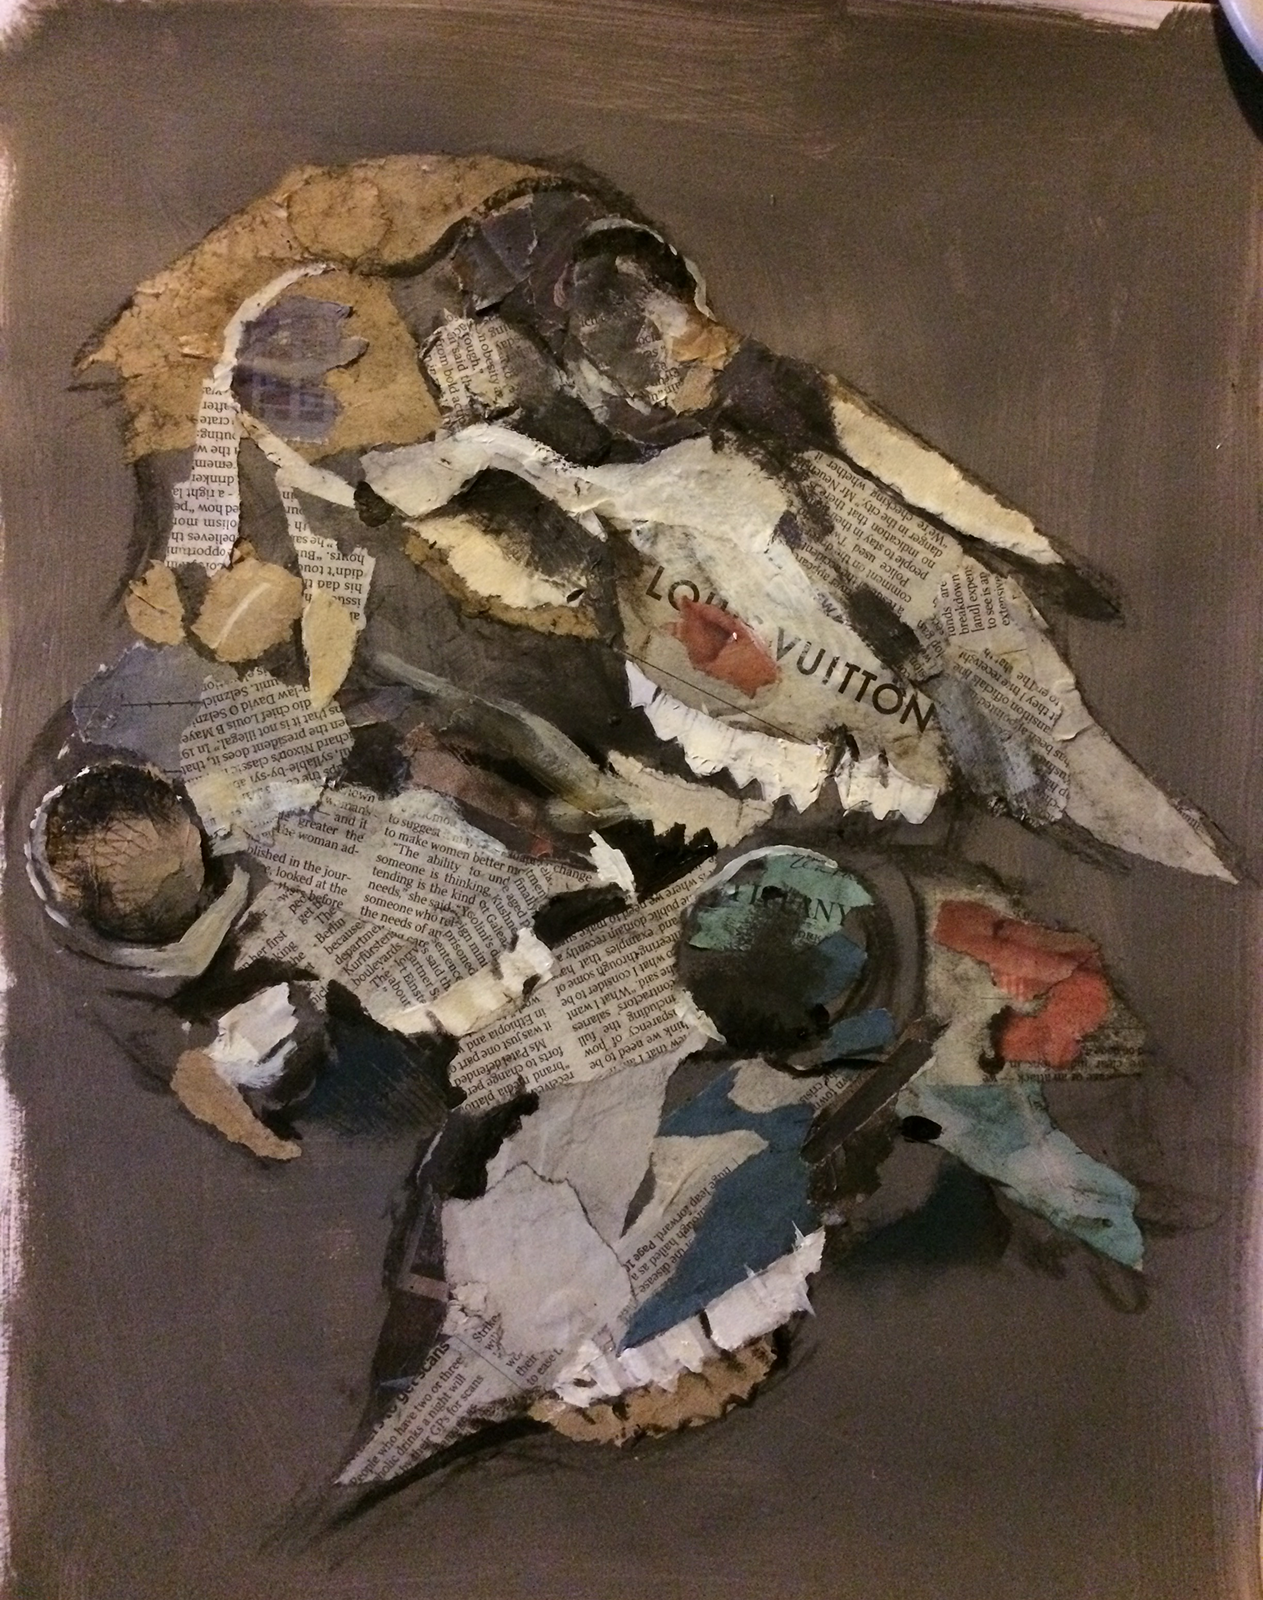 Investigative collage of sheeps' skulls using acrylic paint and newspaper on a dark prepared background